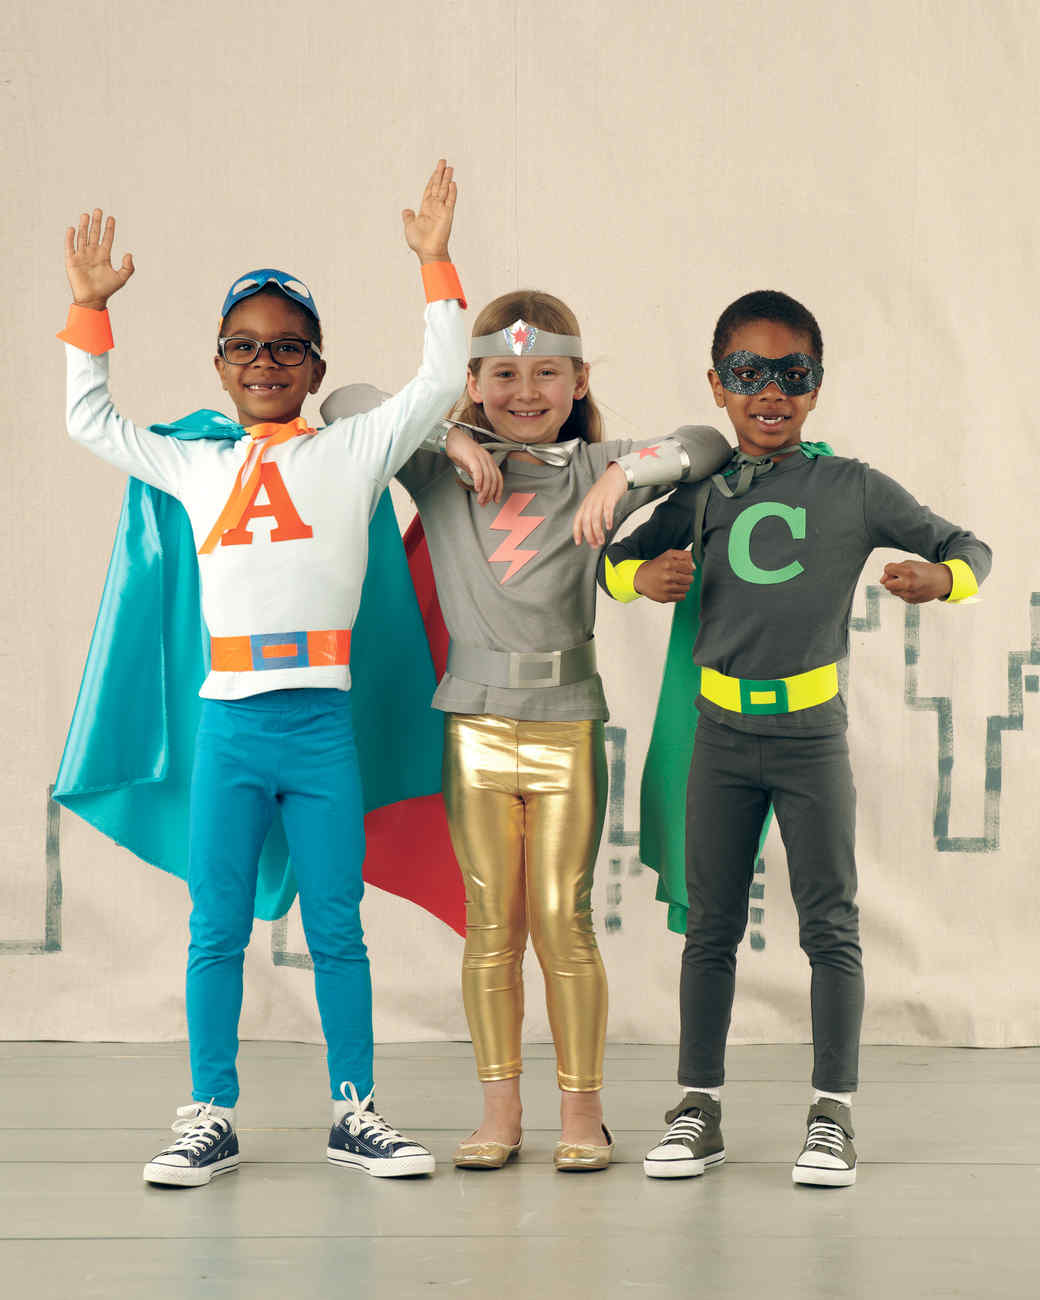 superhero costumes - Halloween Costumes Diy Kids